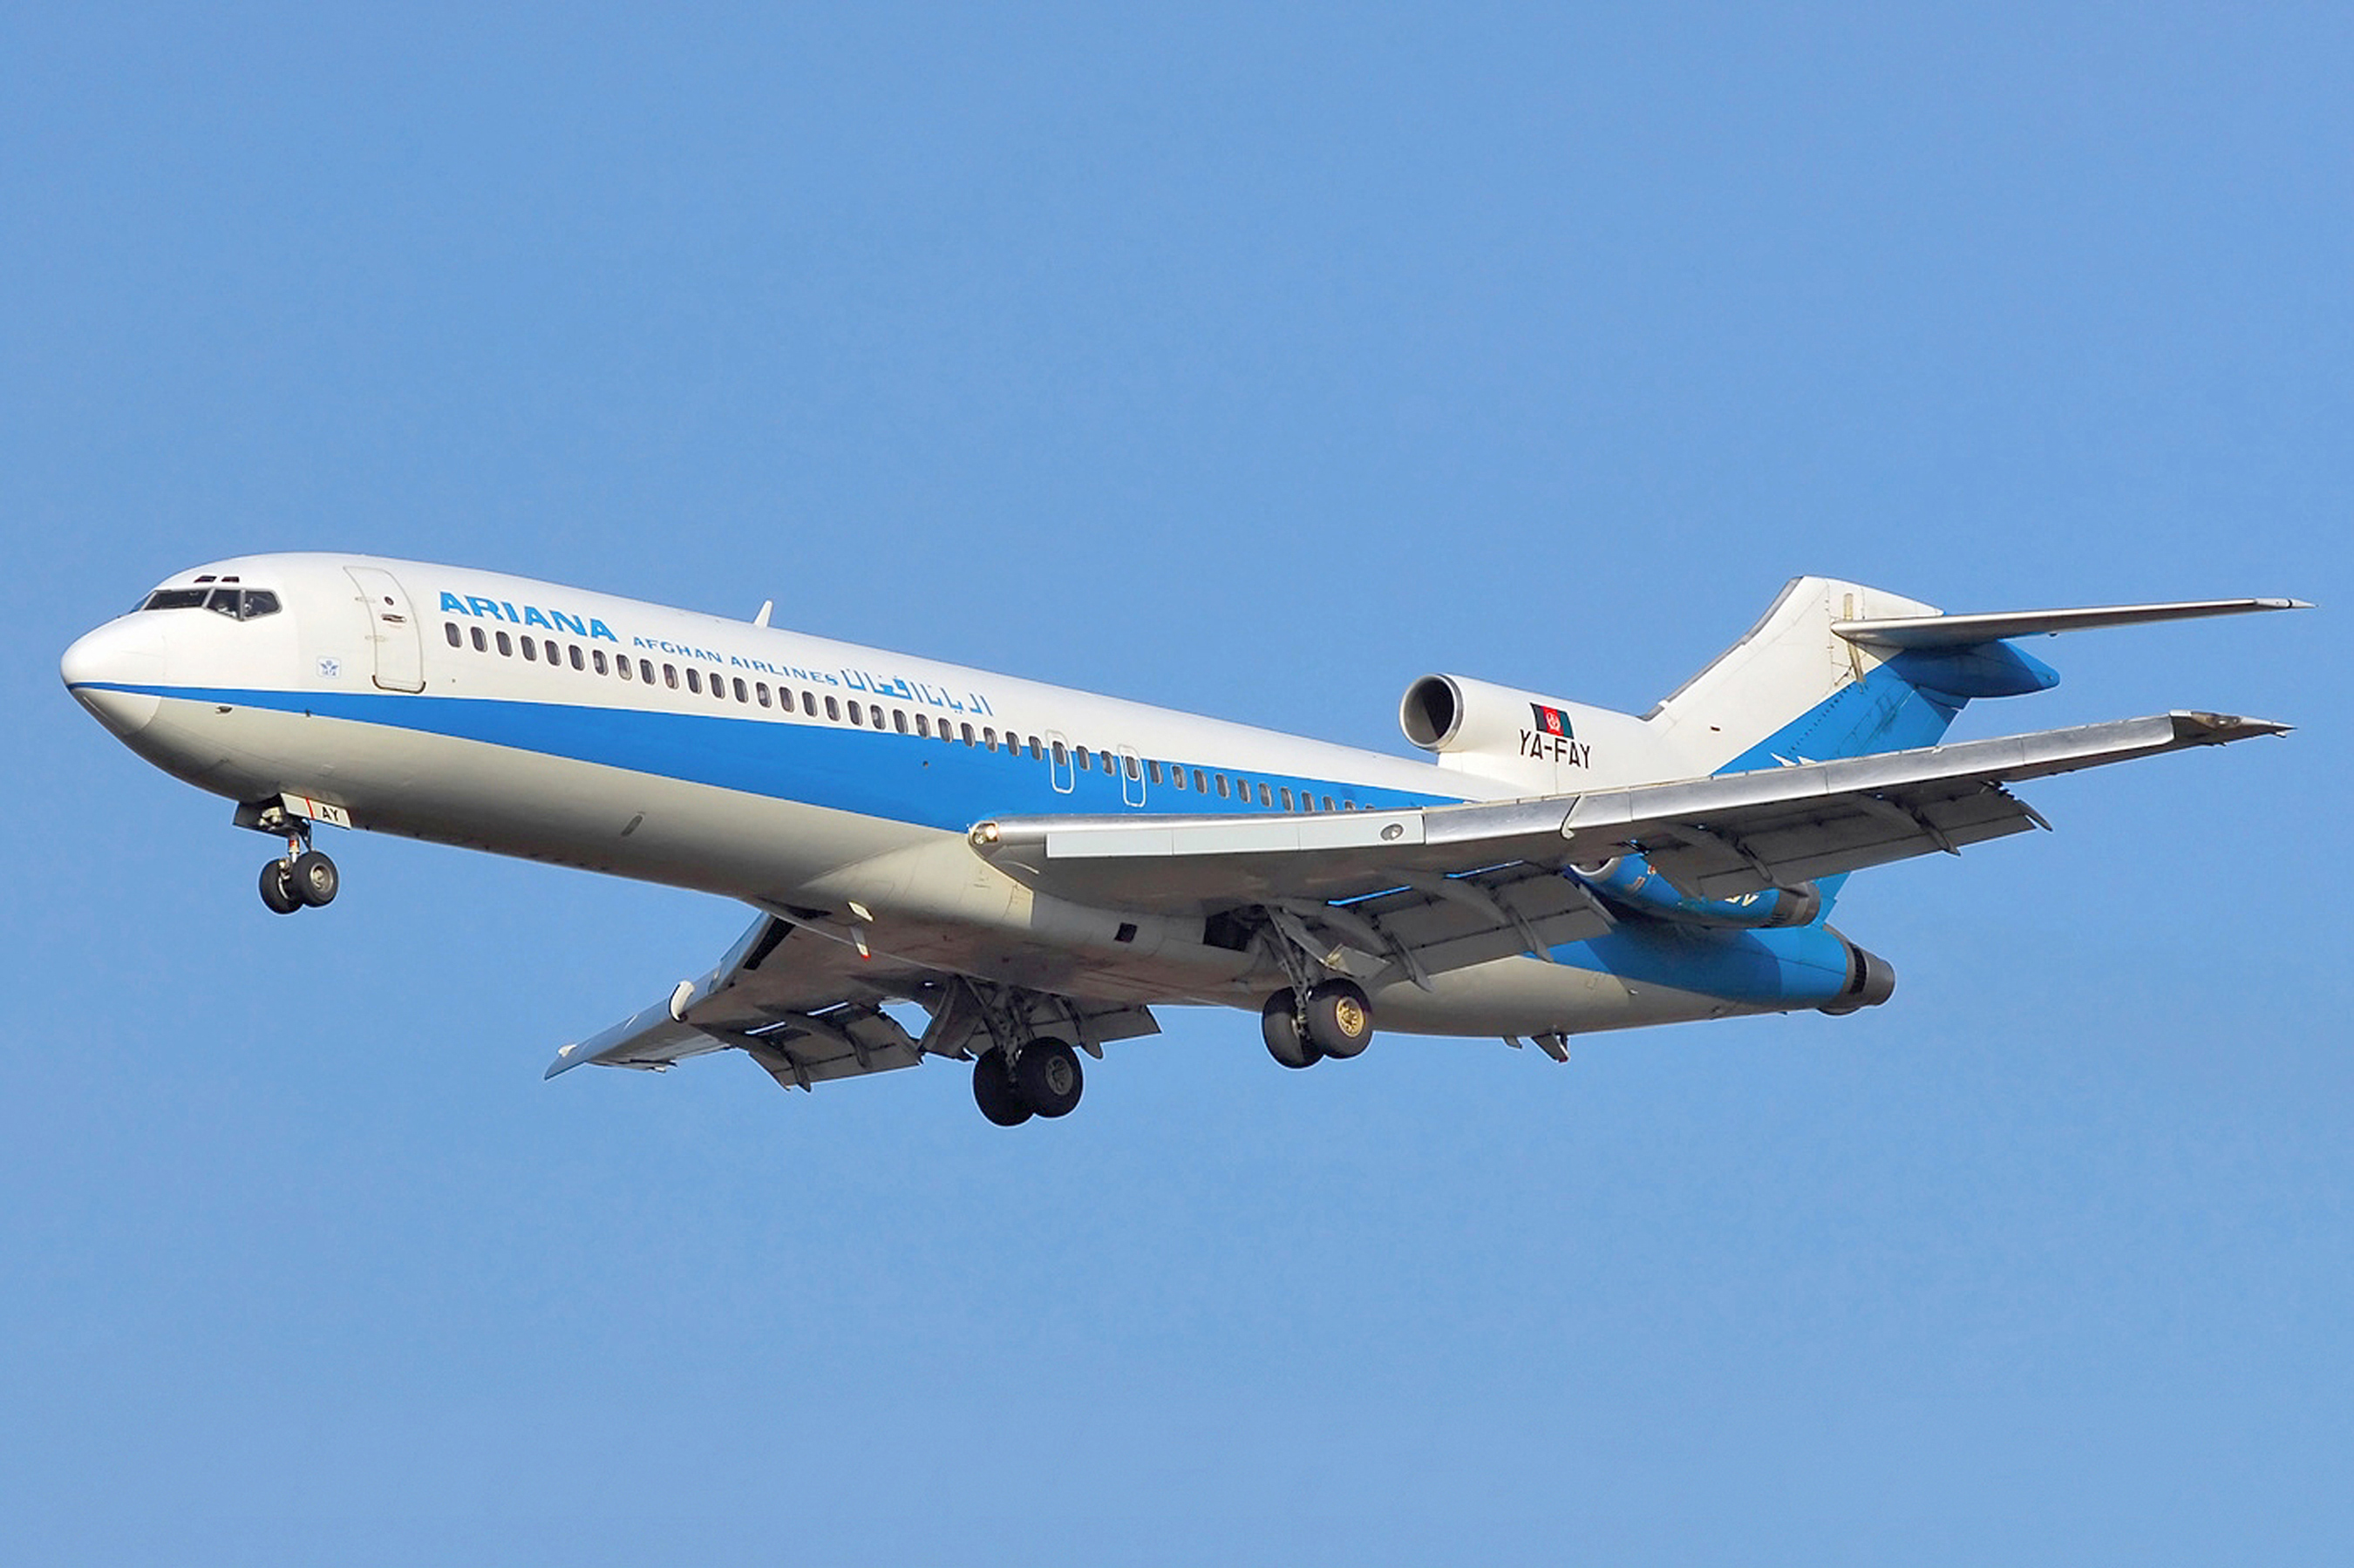 File:Boeing 727-228-Adv, Ariana Afghan Airlines AN1450645.jpg